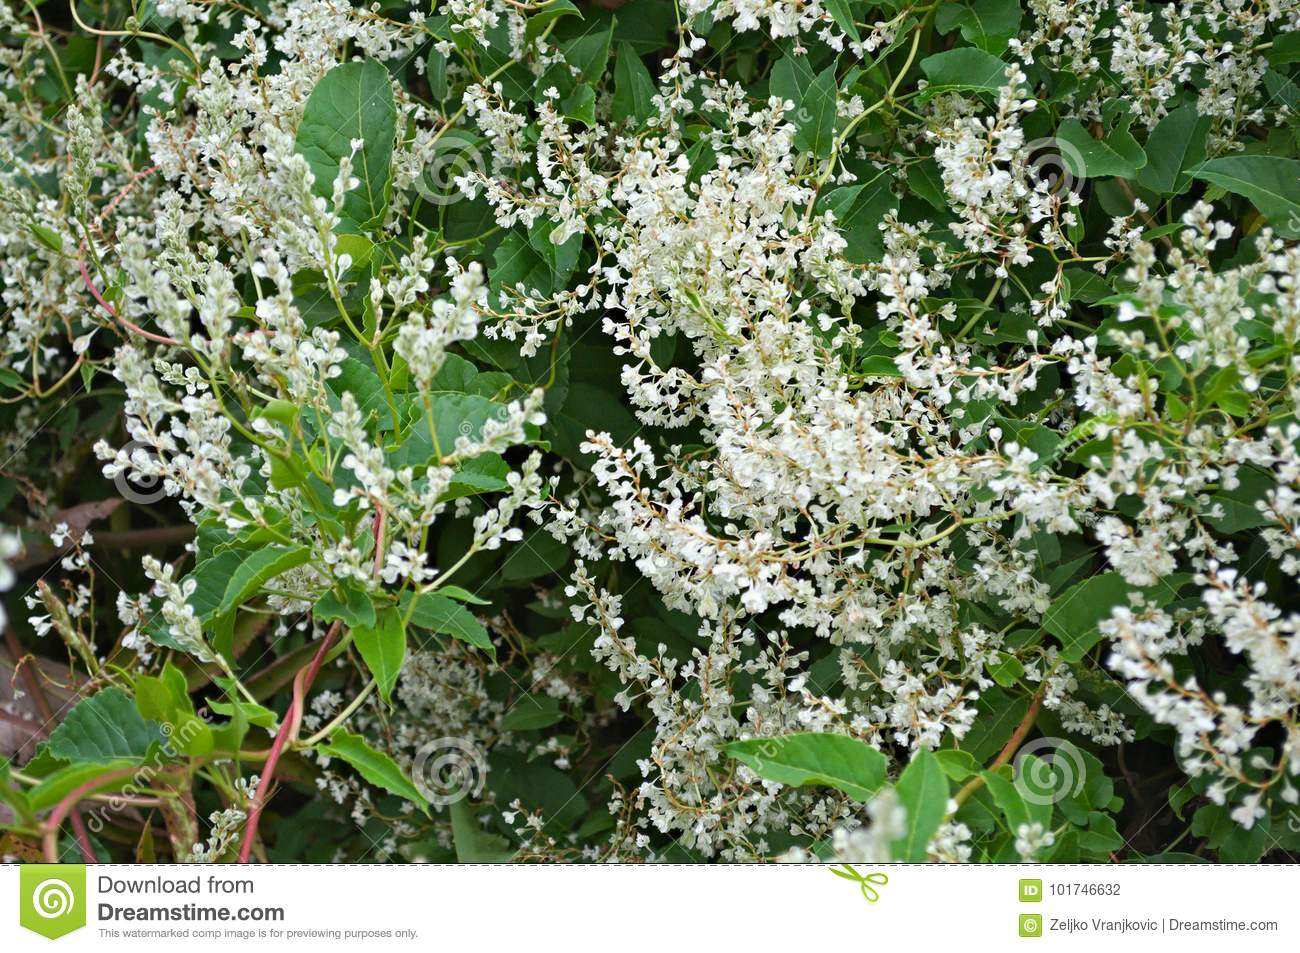 Climbing plant blooming white flowers close up stock photo image climbing plant blooming white flowers close up mightylinksfo